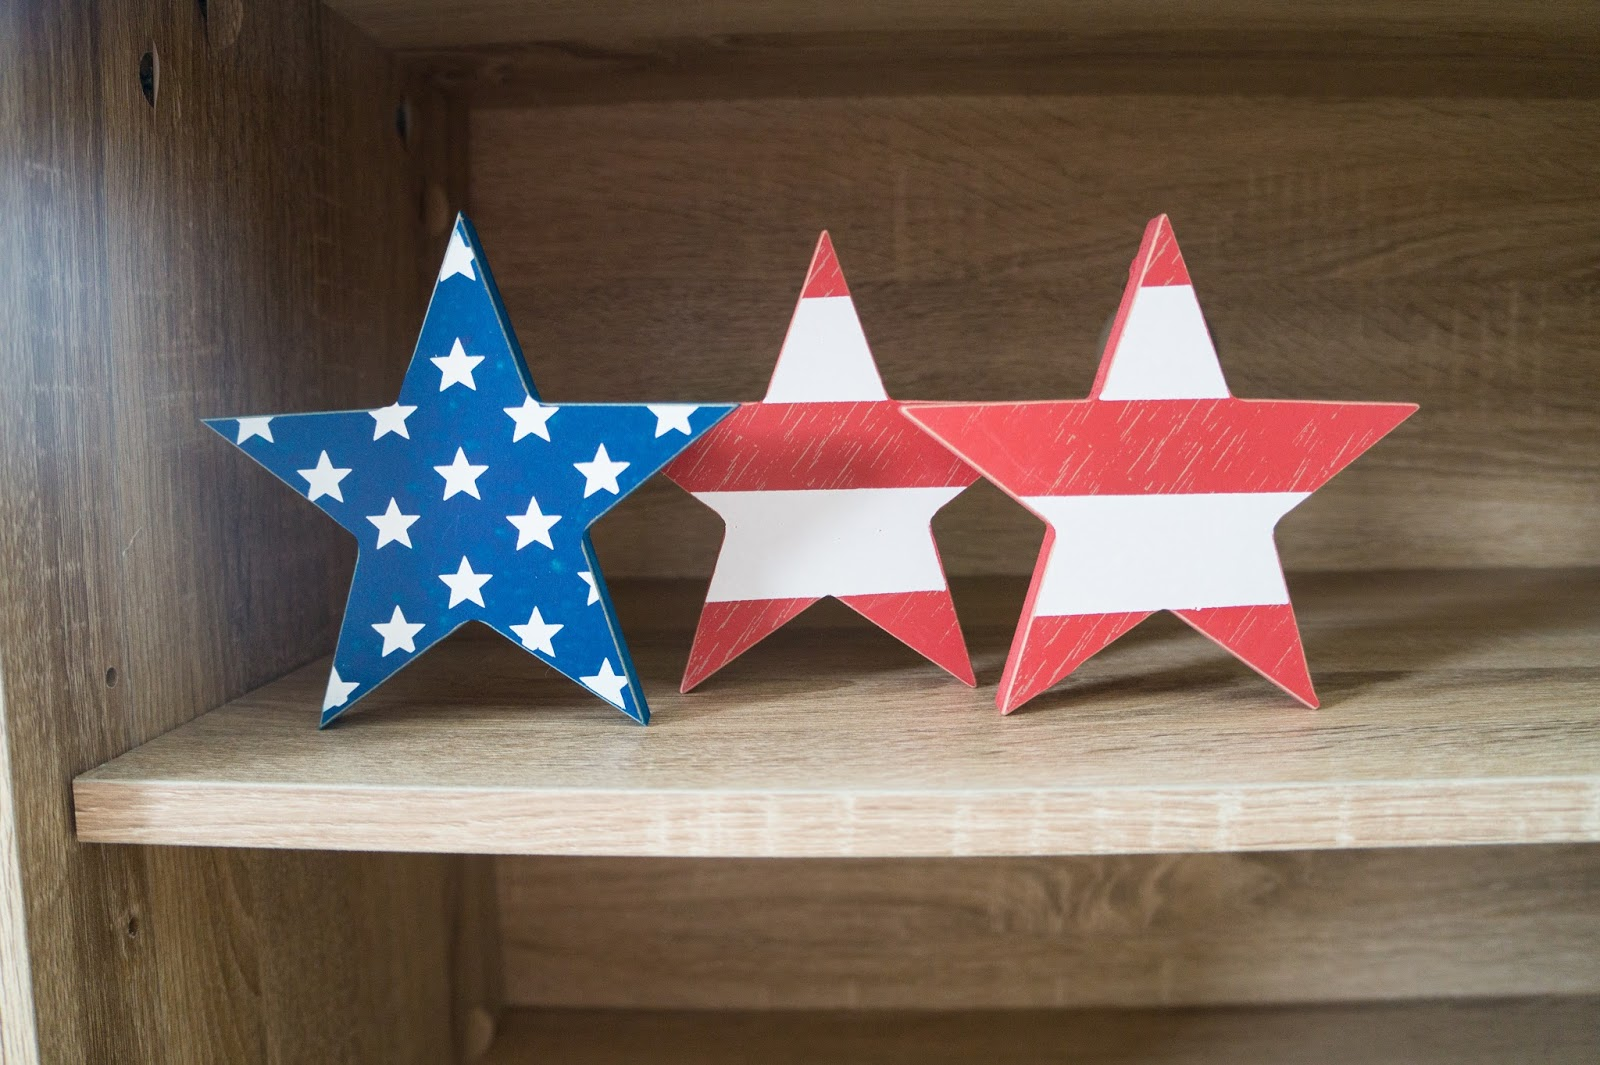 Three pieces of star shaped wood with an American flag design.